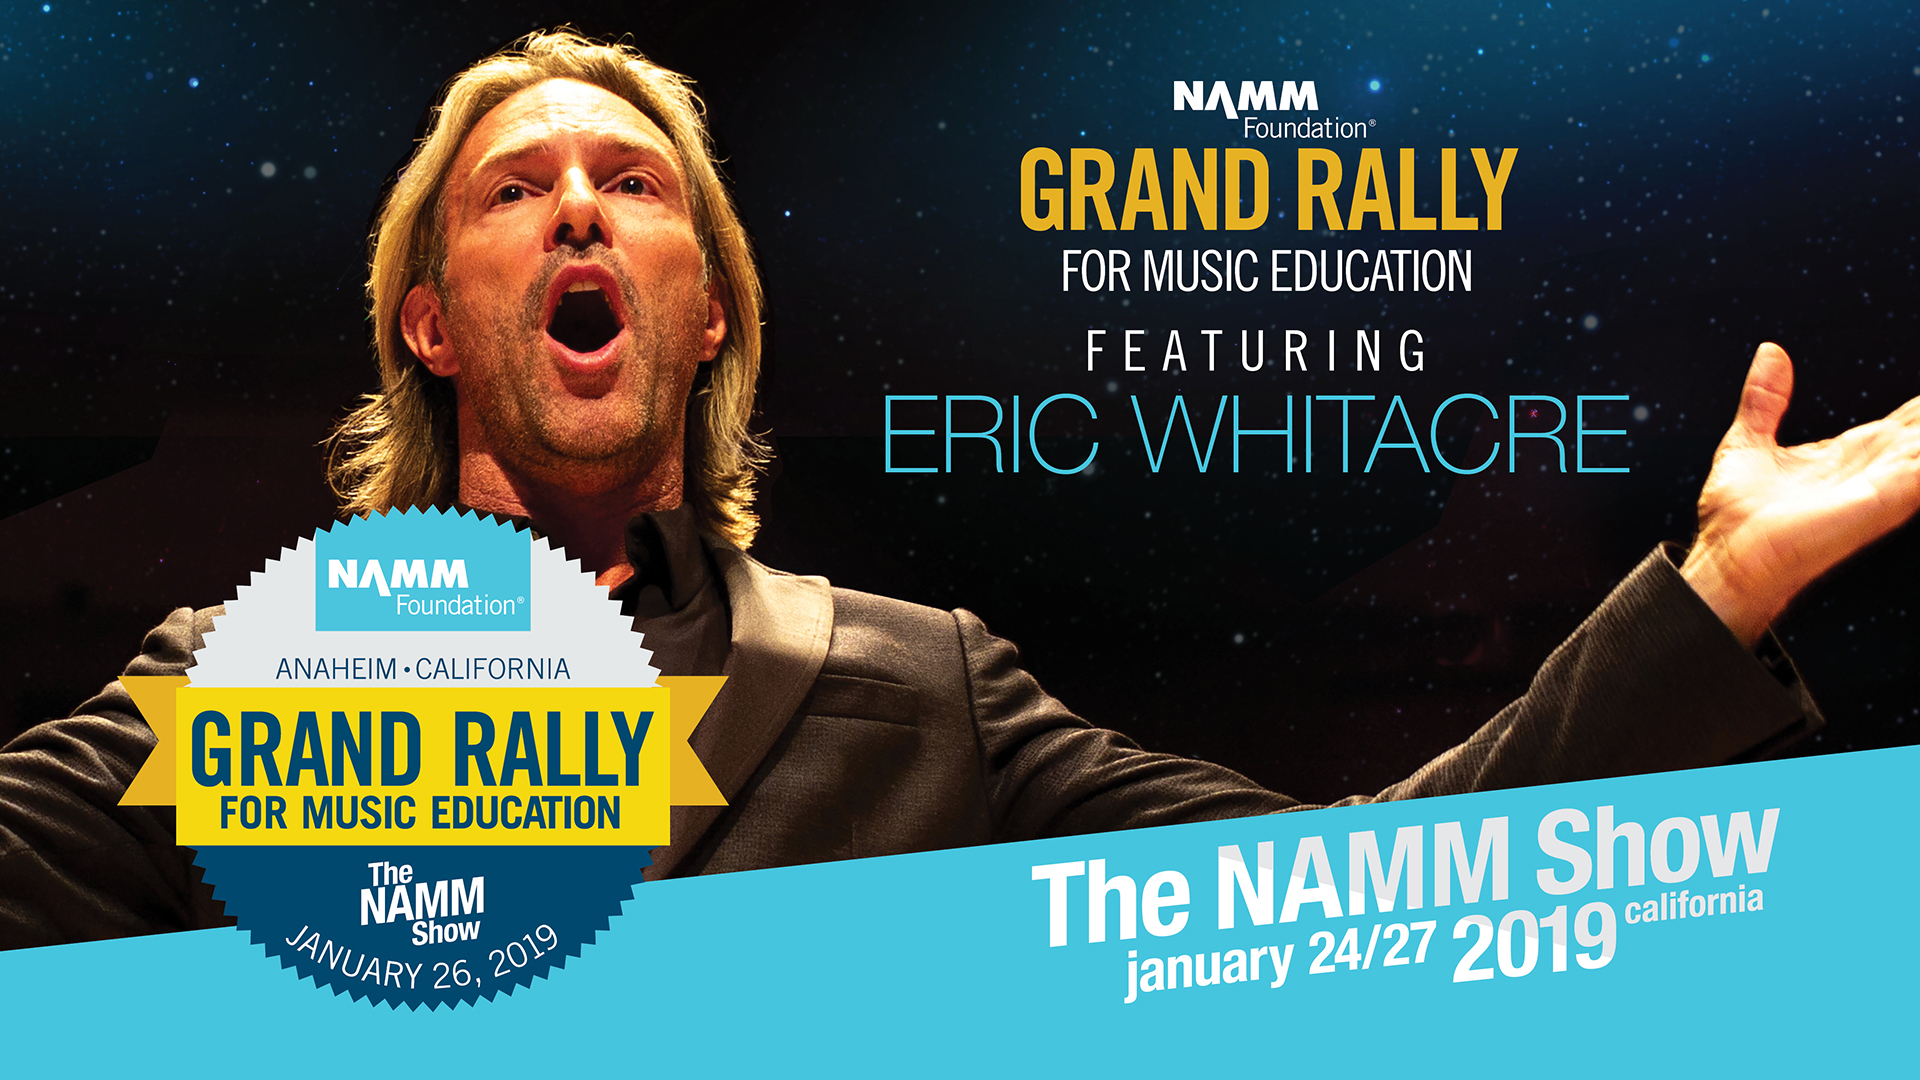 The Grand Rally for Music Education at The 2019 NAMM Show